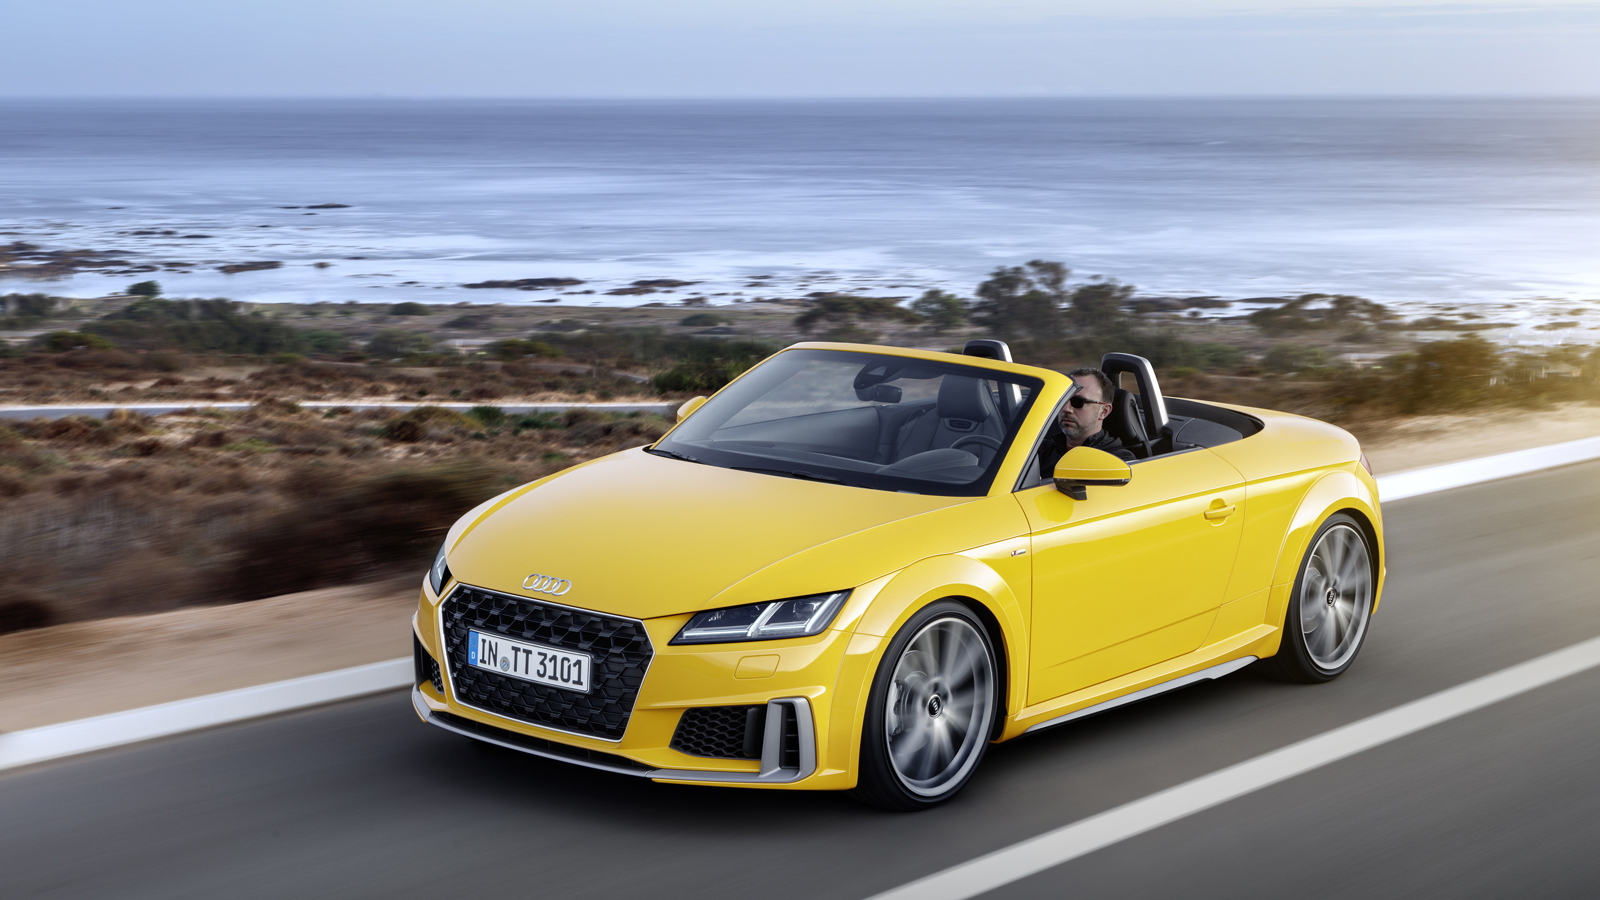 audi tt updated for 2019 we think news. Black Bedroom Furniture Sets. Home Design Ideas